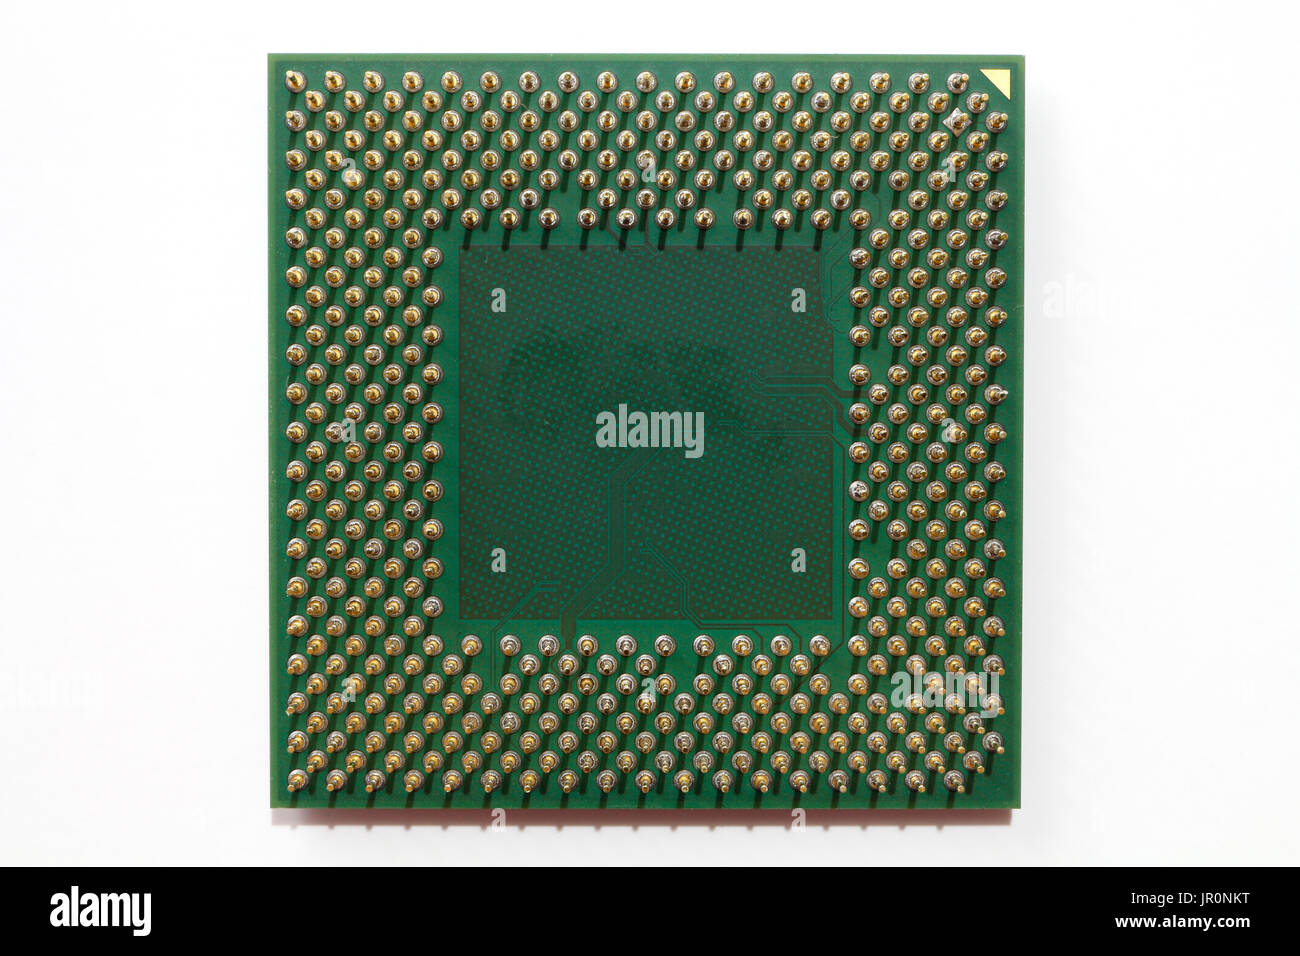 microprocessor stock photos   microprocessor stock images Electronic Circuit Symbols Crossword Puzzle Electronic Circuit Boards Parts